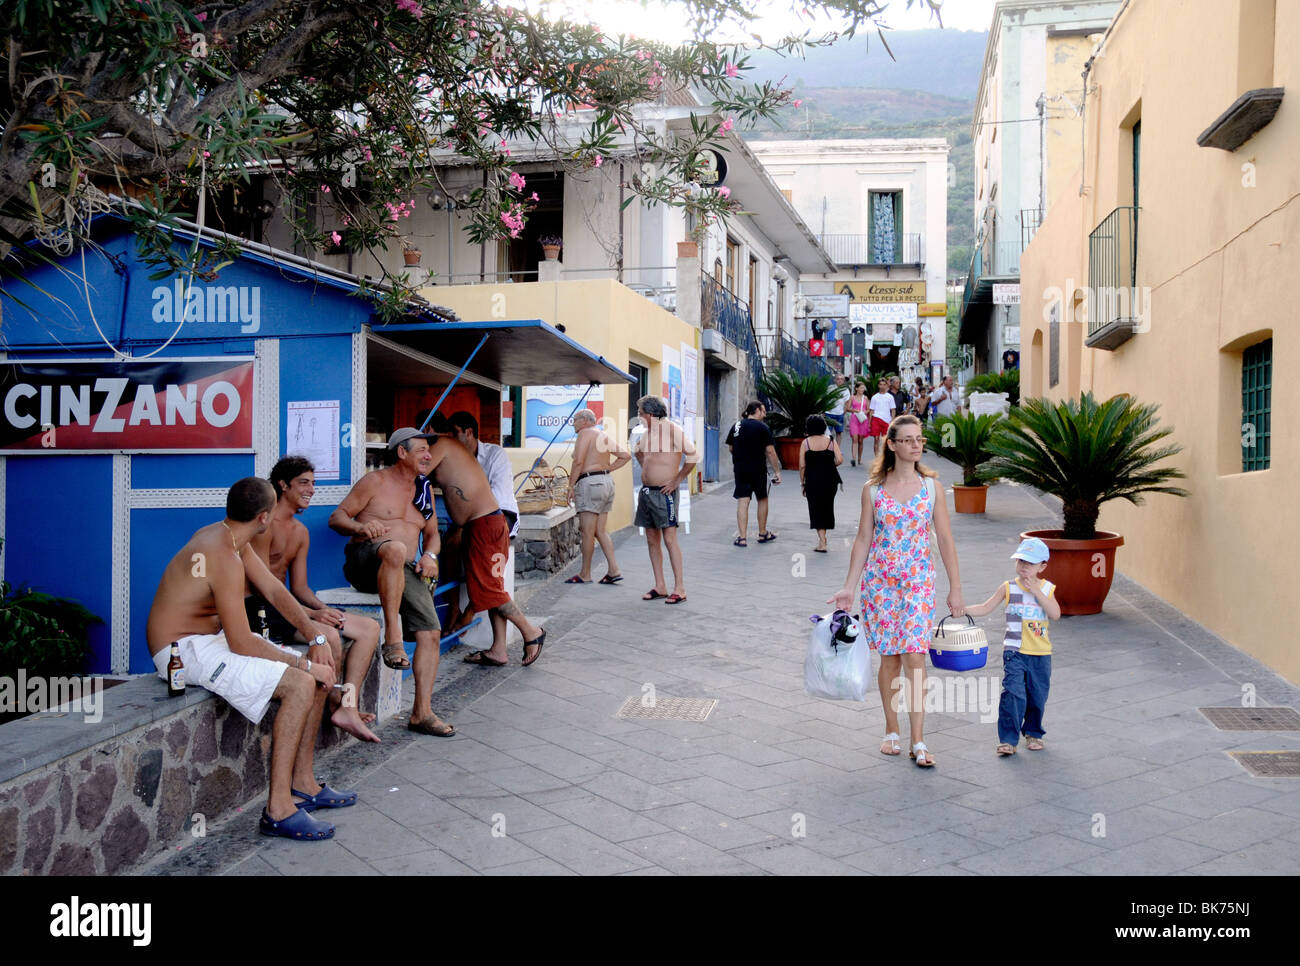 People milling about the port area of Santa Marina, on the Aeolian Island of Salina. - Stock Image